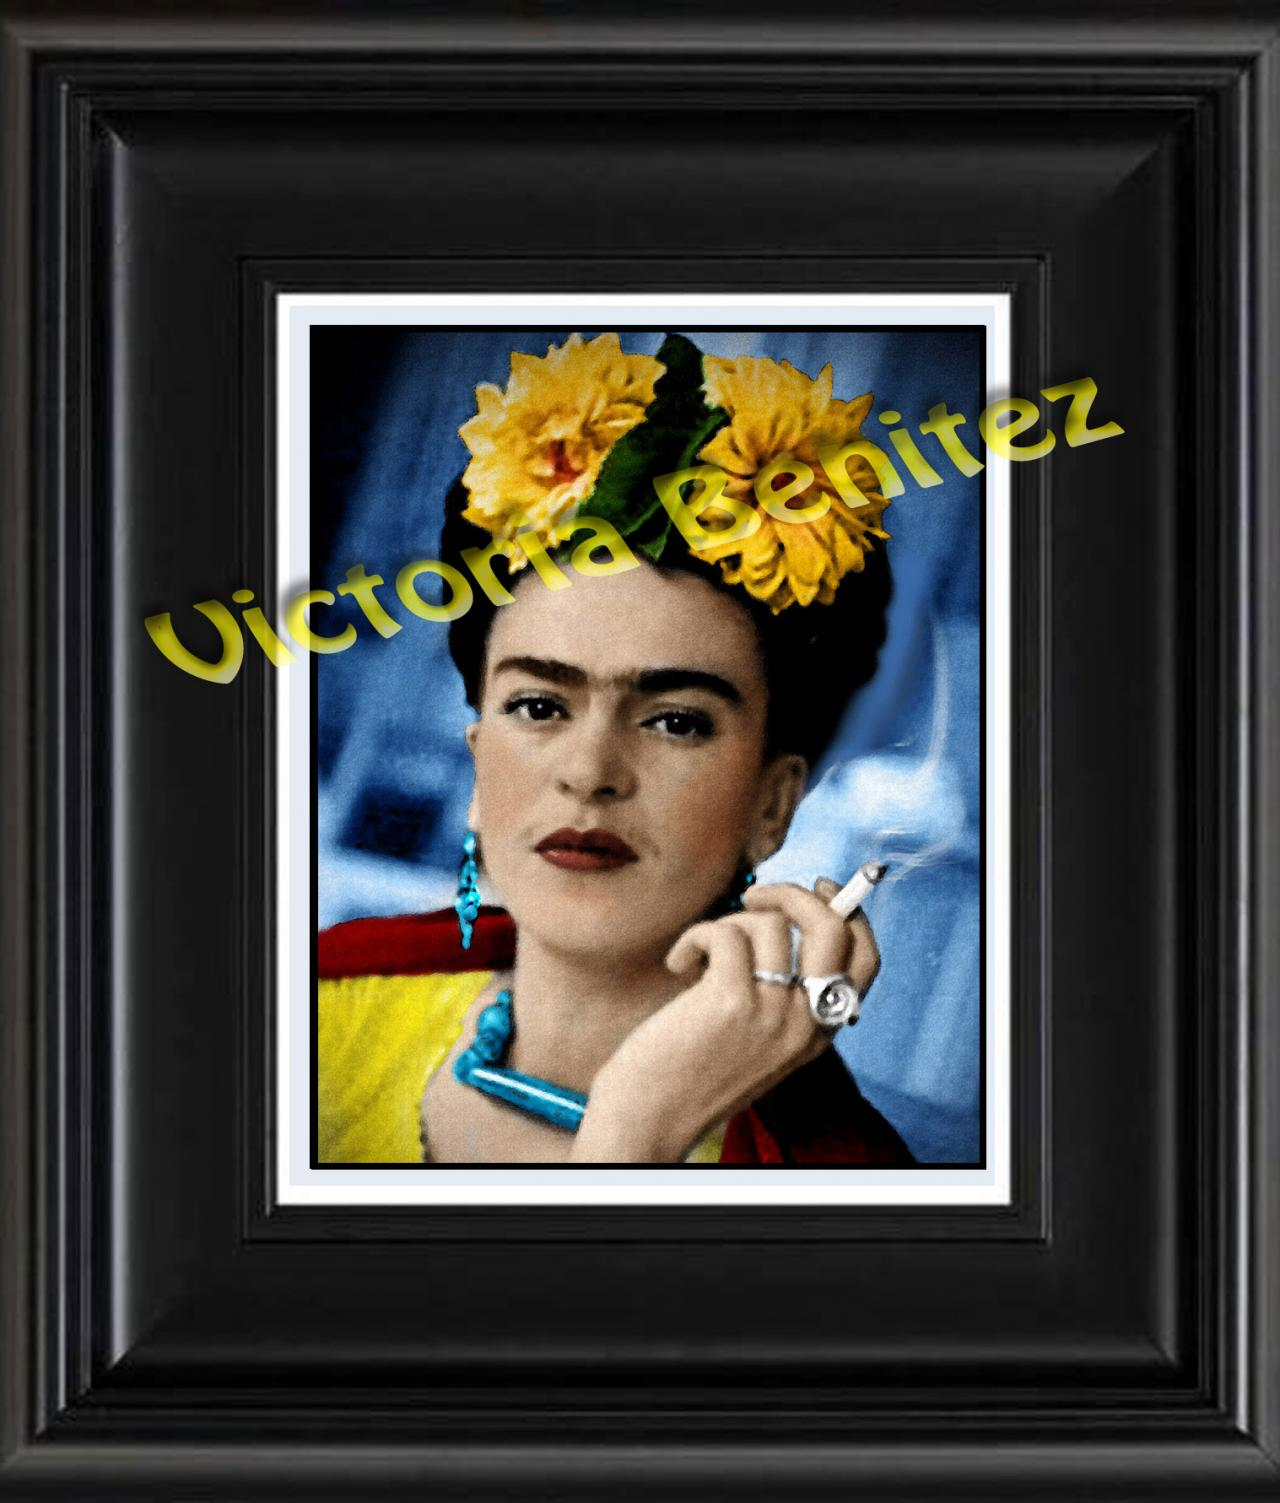 FRIDA KAHLO day of the dead CEMPAZUCHILES digital oil painting design 8' X 10' photo print